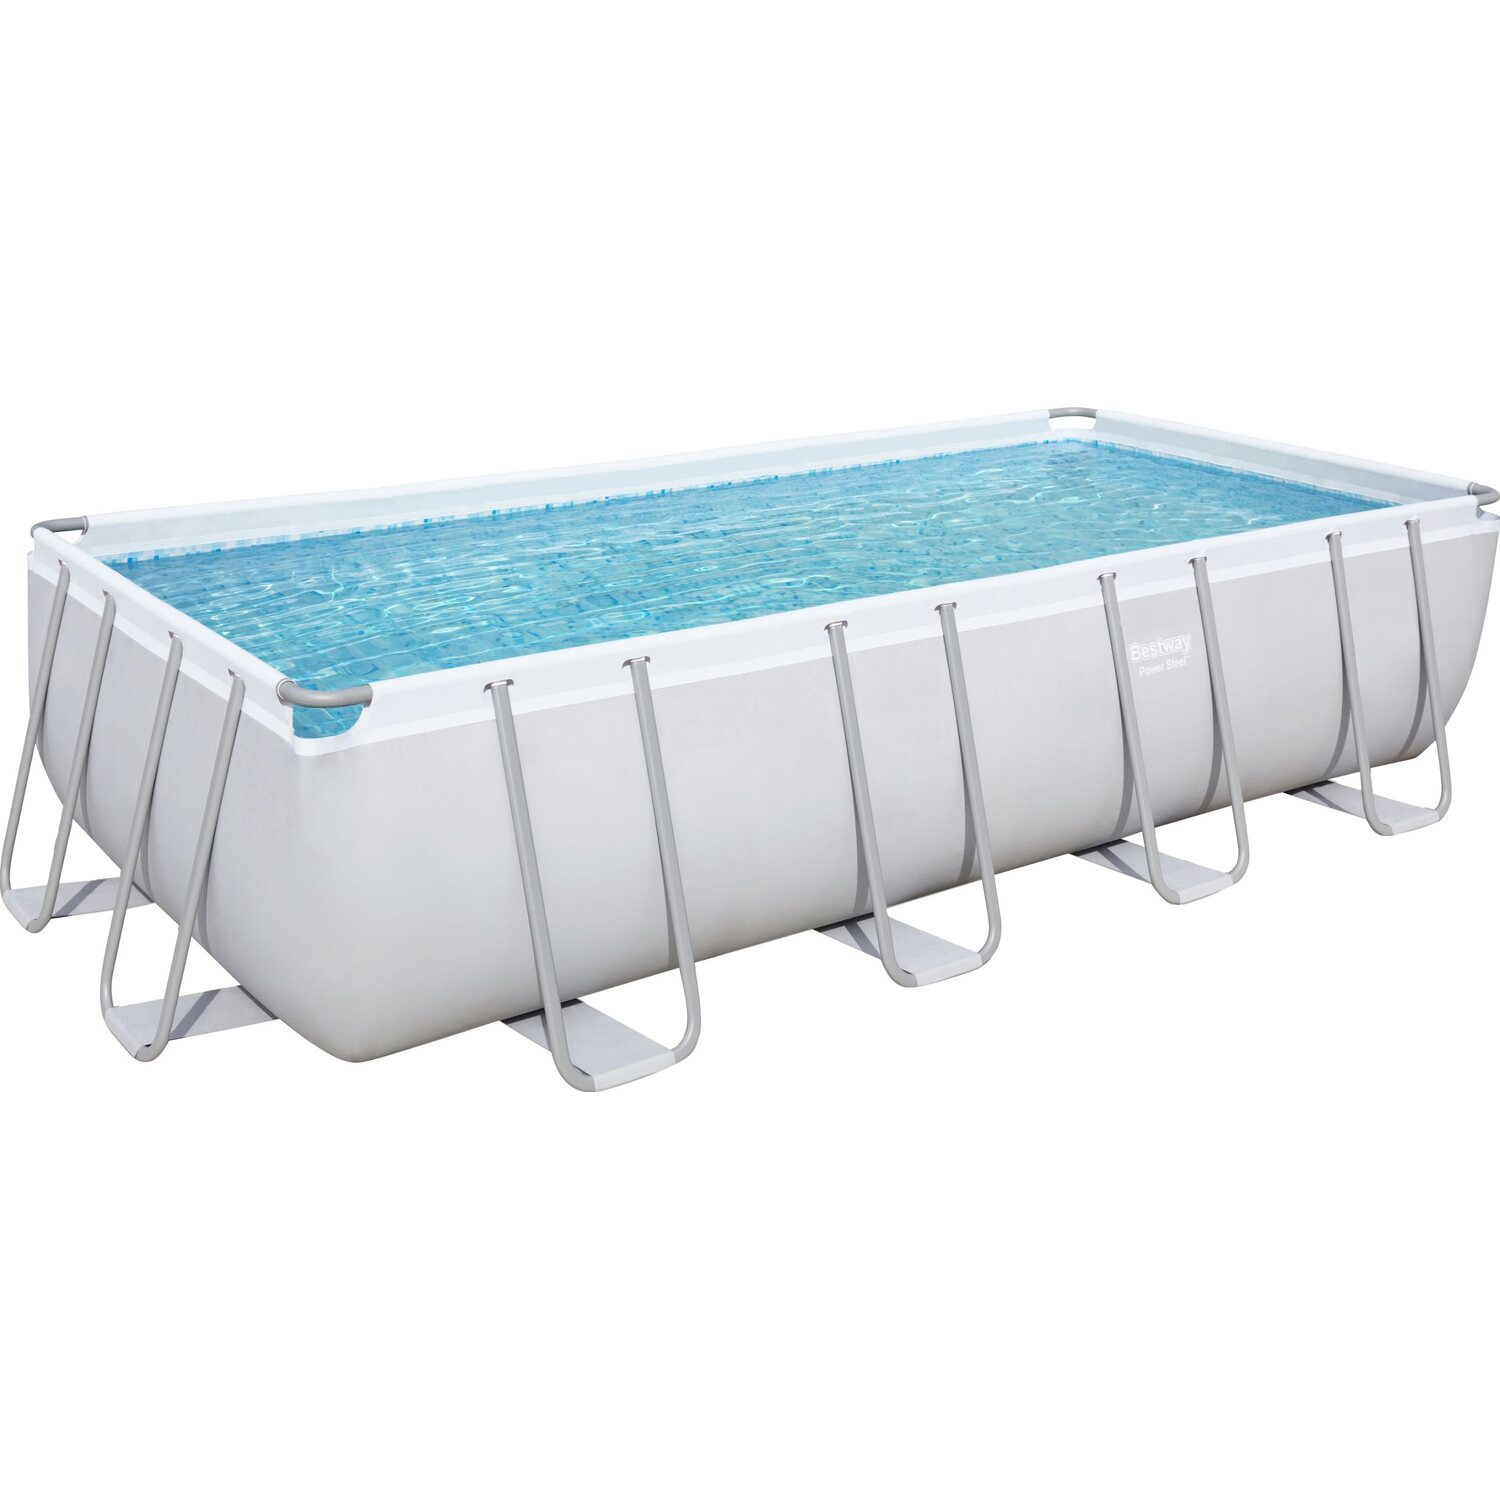 Bestway stahlrahmen pool set 549 cm x 274 cm x 122 cm for Pool aufblasbar eckig